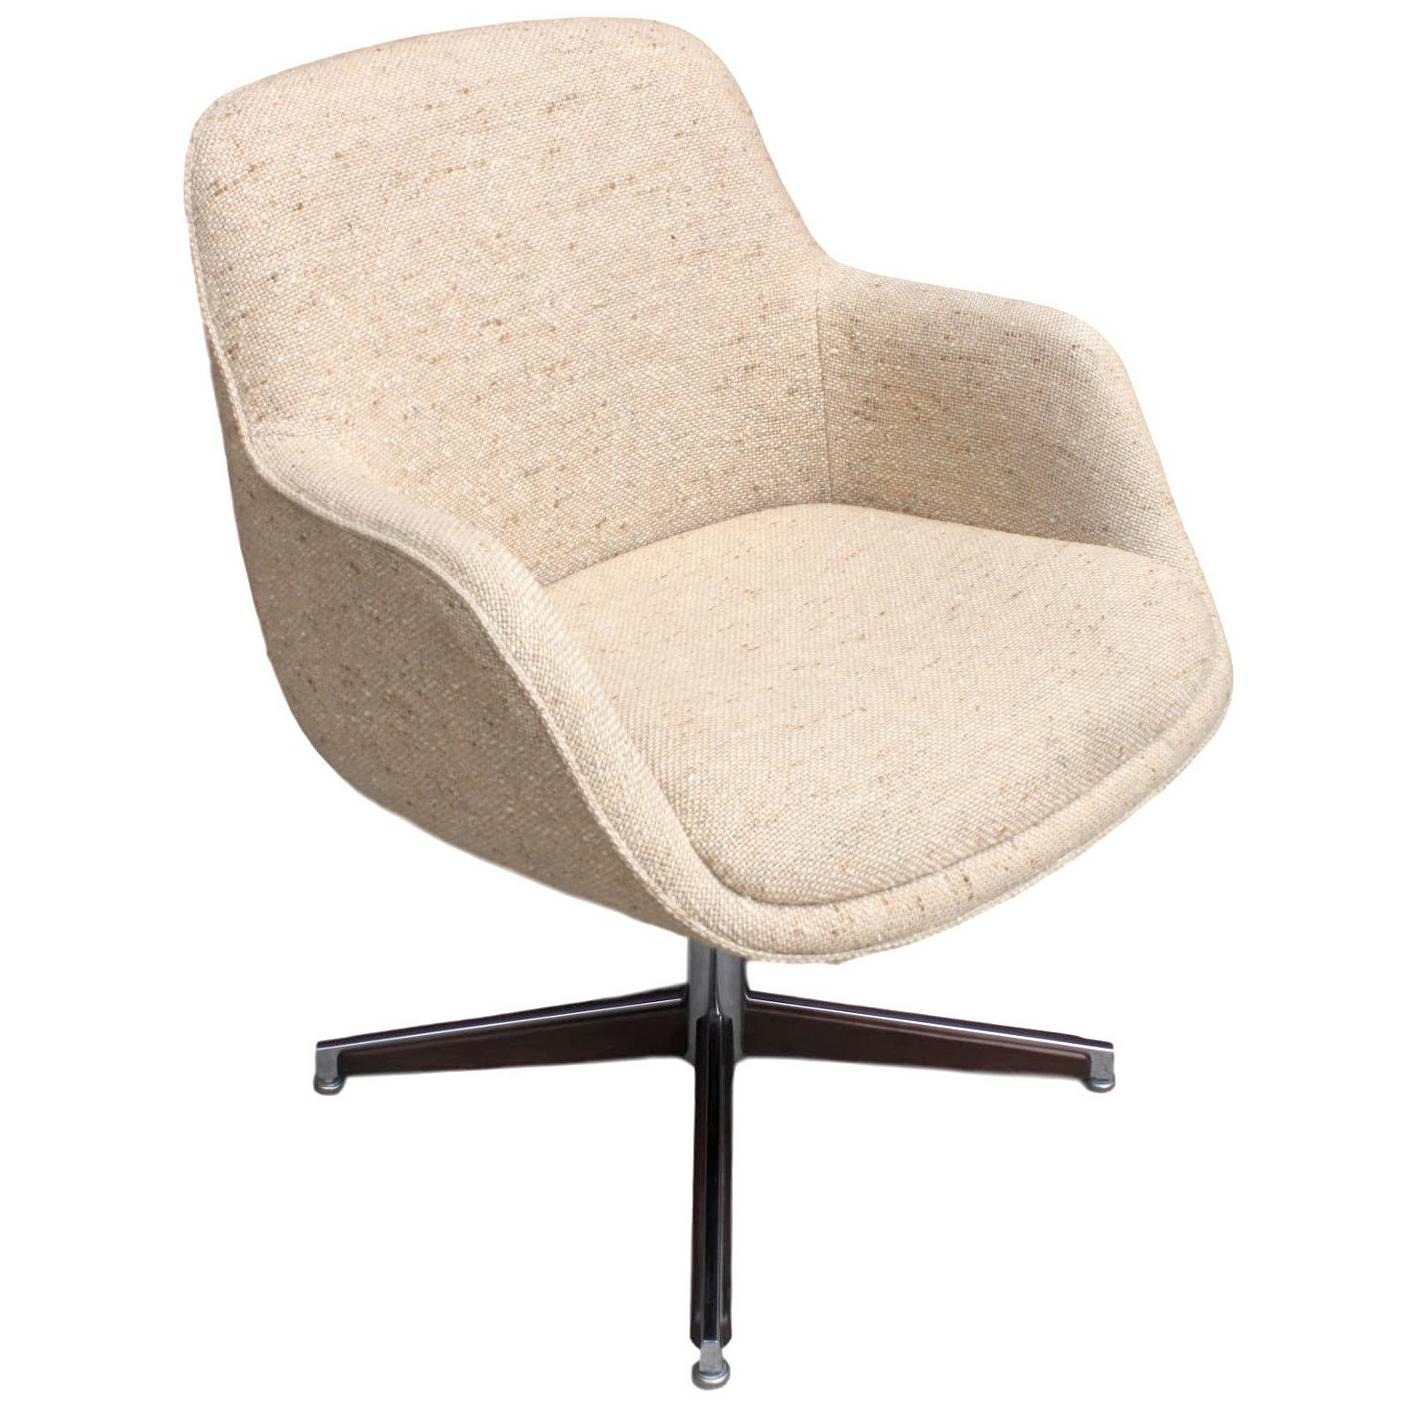 contemporary desk chairs cover for chair 1960s mid century modern walnut and chrome with cream upholstery sale